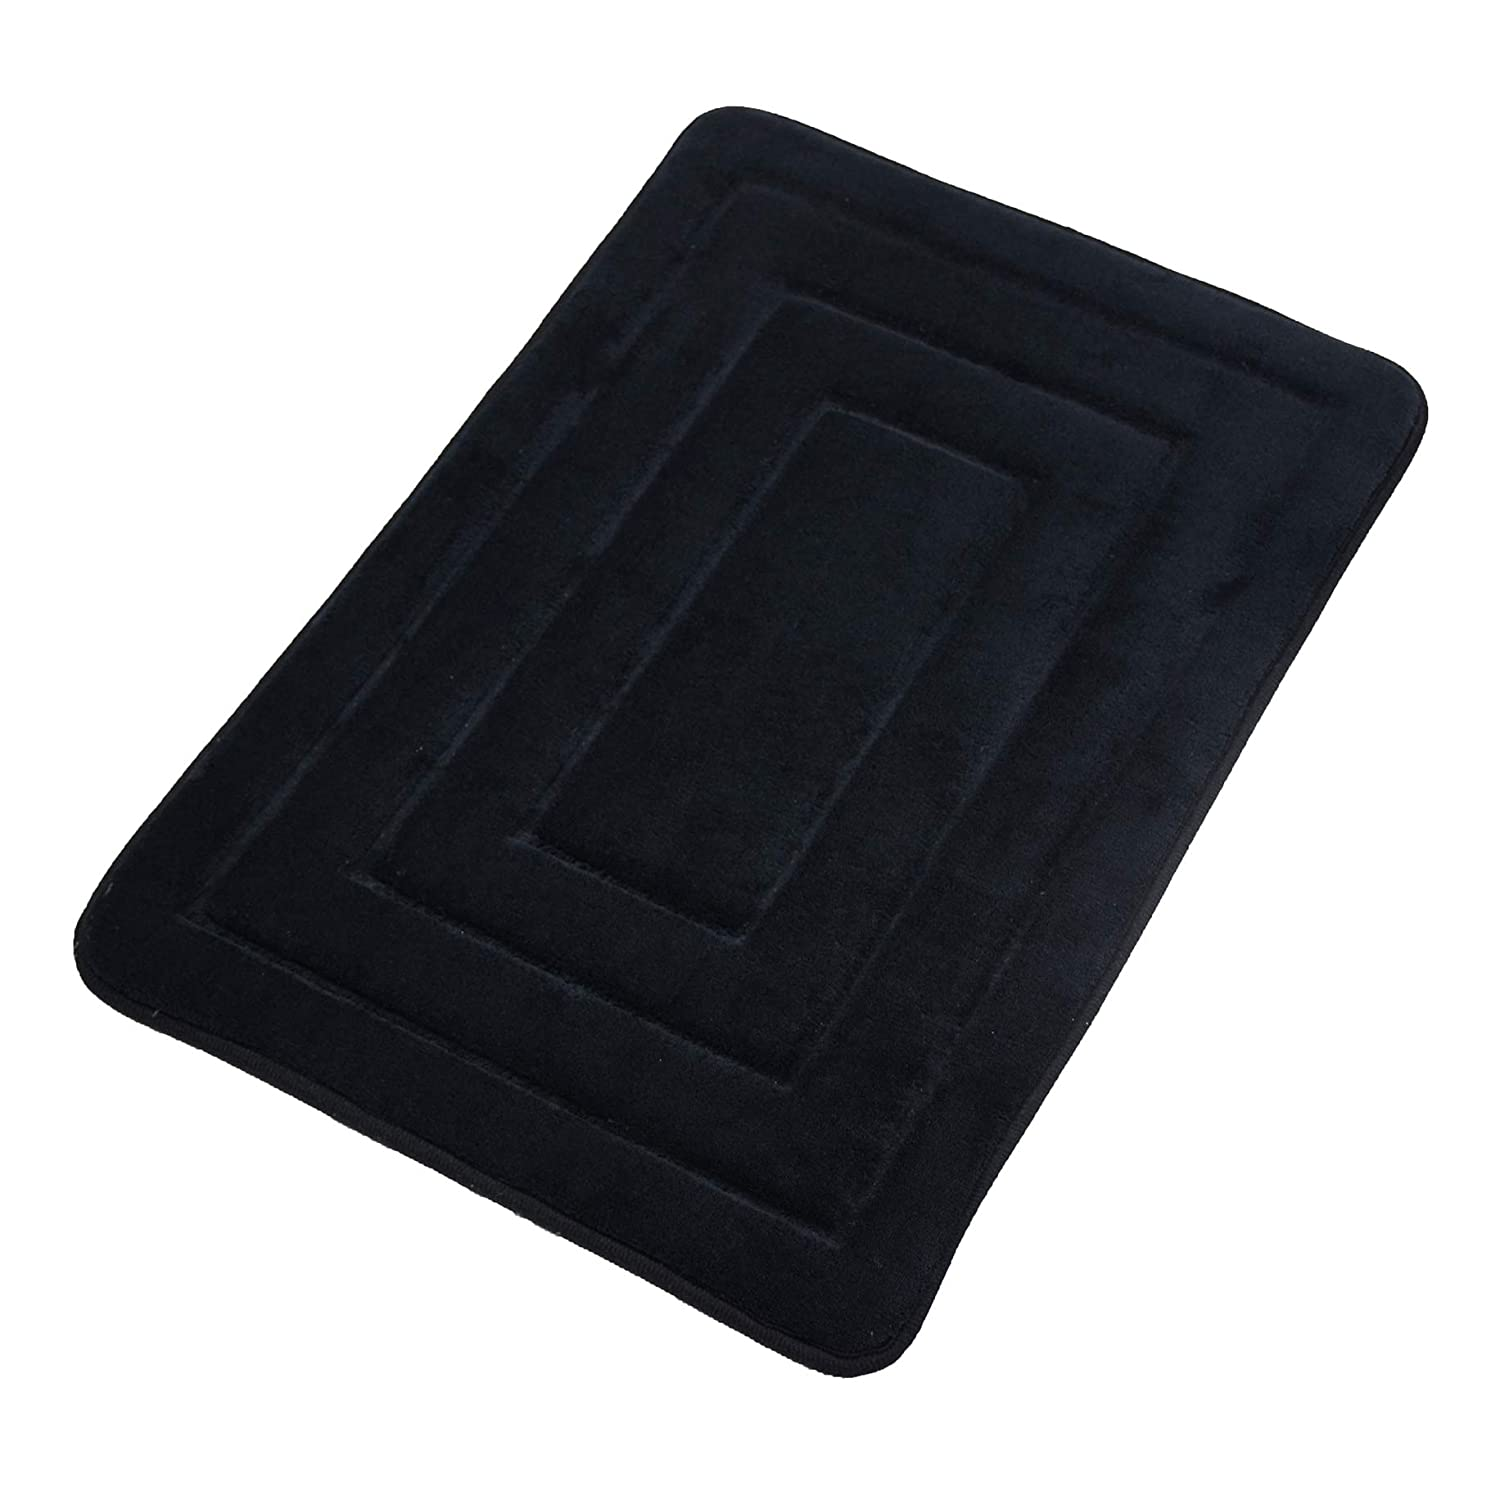 Elegant Bath Mat Soft Bathroom Rugs Non-Slip Rubber Shower Rugs Comfortable Coral Velvet Bathroom Mat (16 x 24 Alternate Stripe, Black)